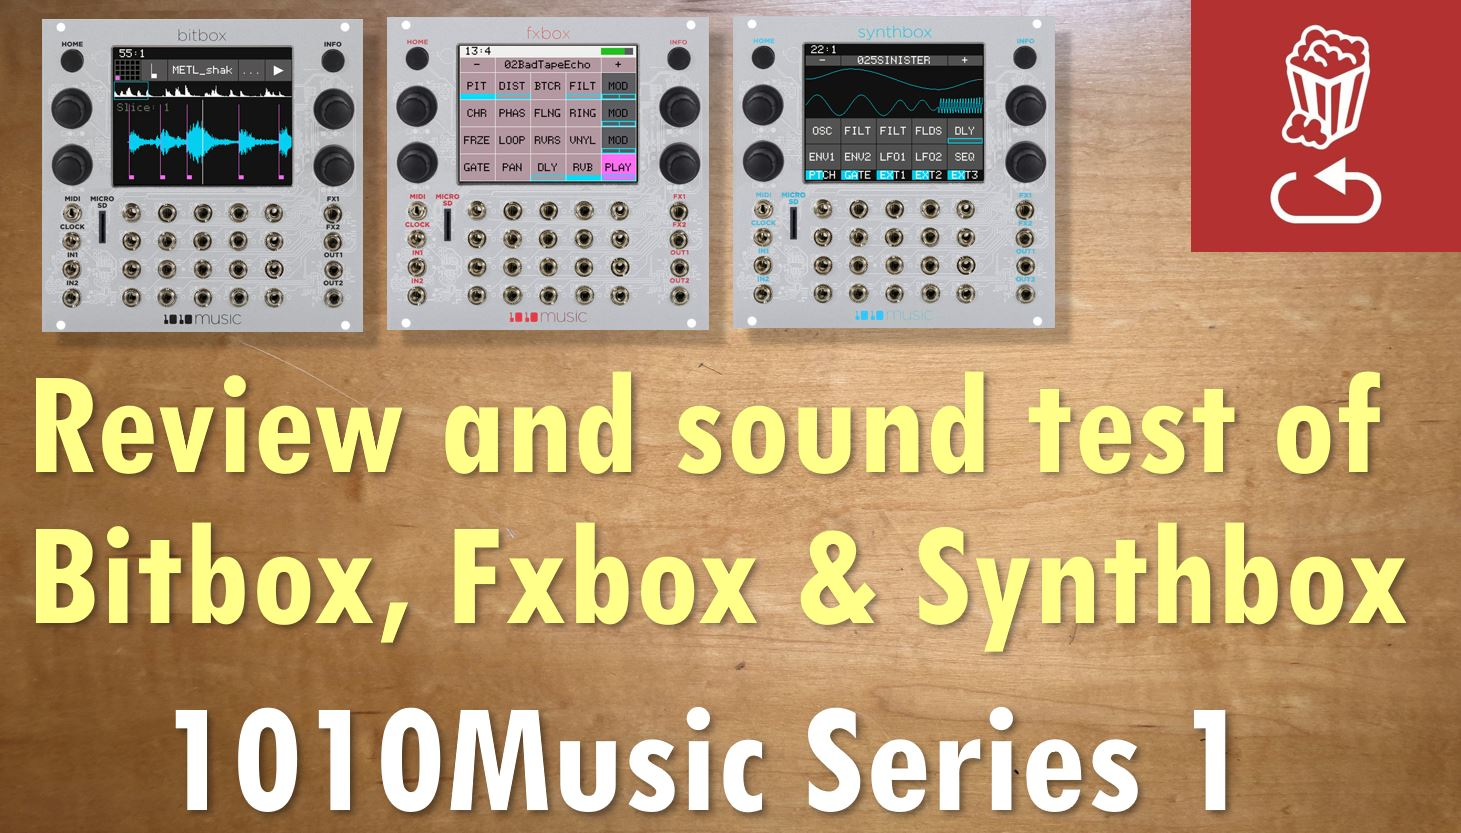 1010Music SERIES 1 Eurorack Powerhouse: Review and sound